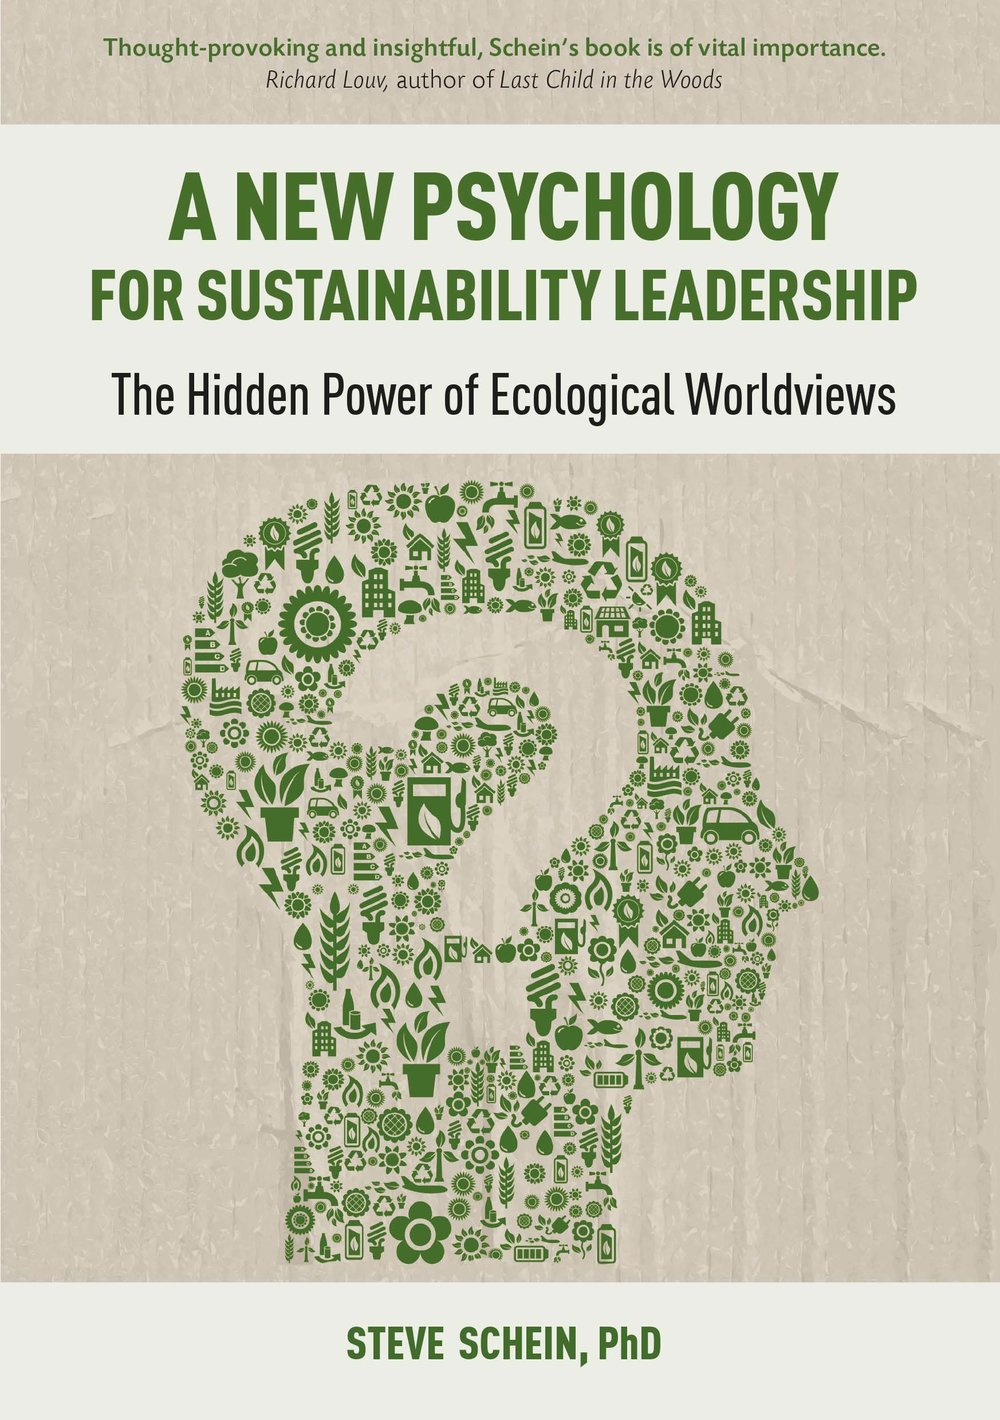 Book_A-New-Psychology-for-Sustainability-Leadership.jpg